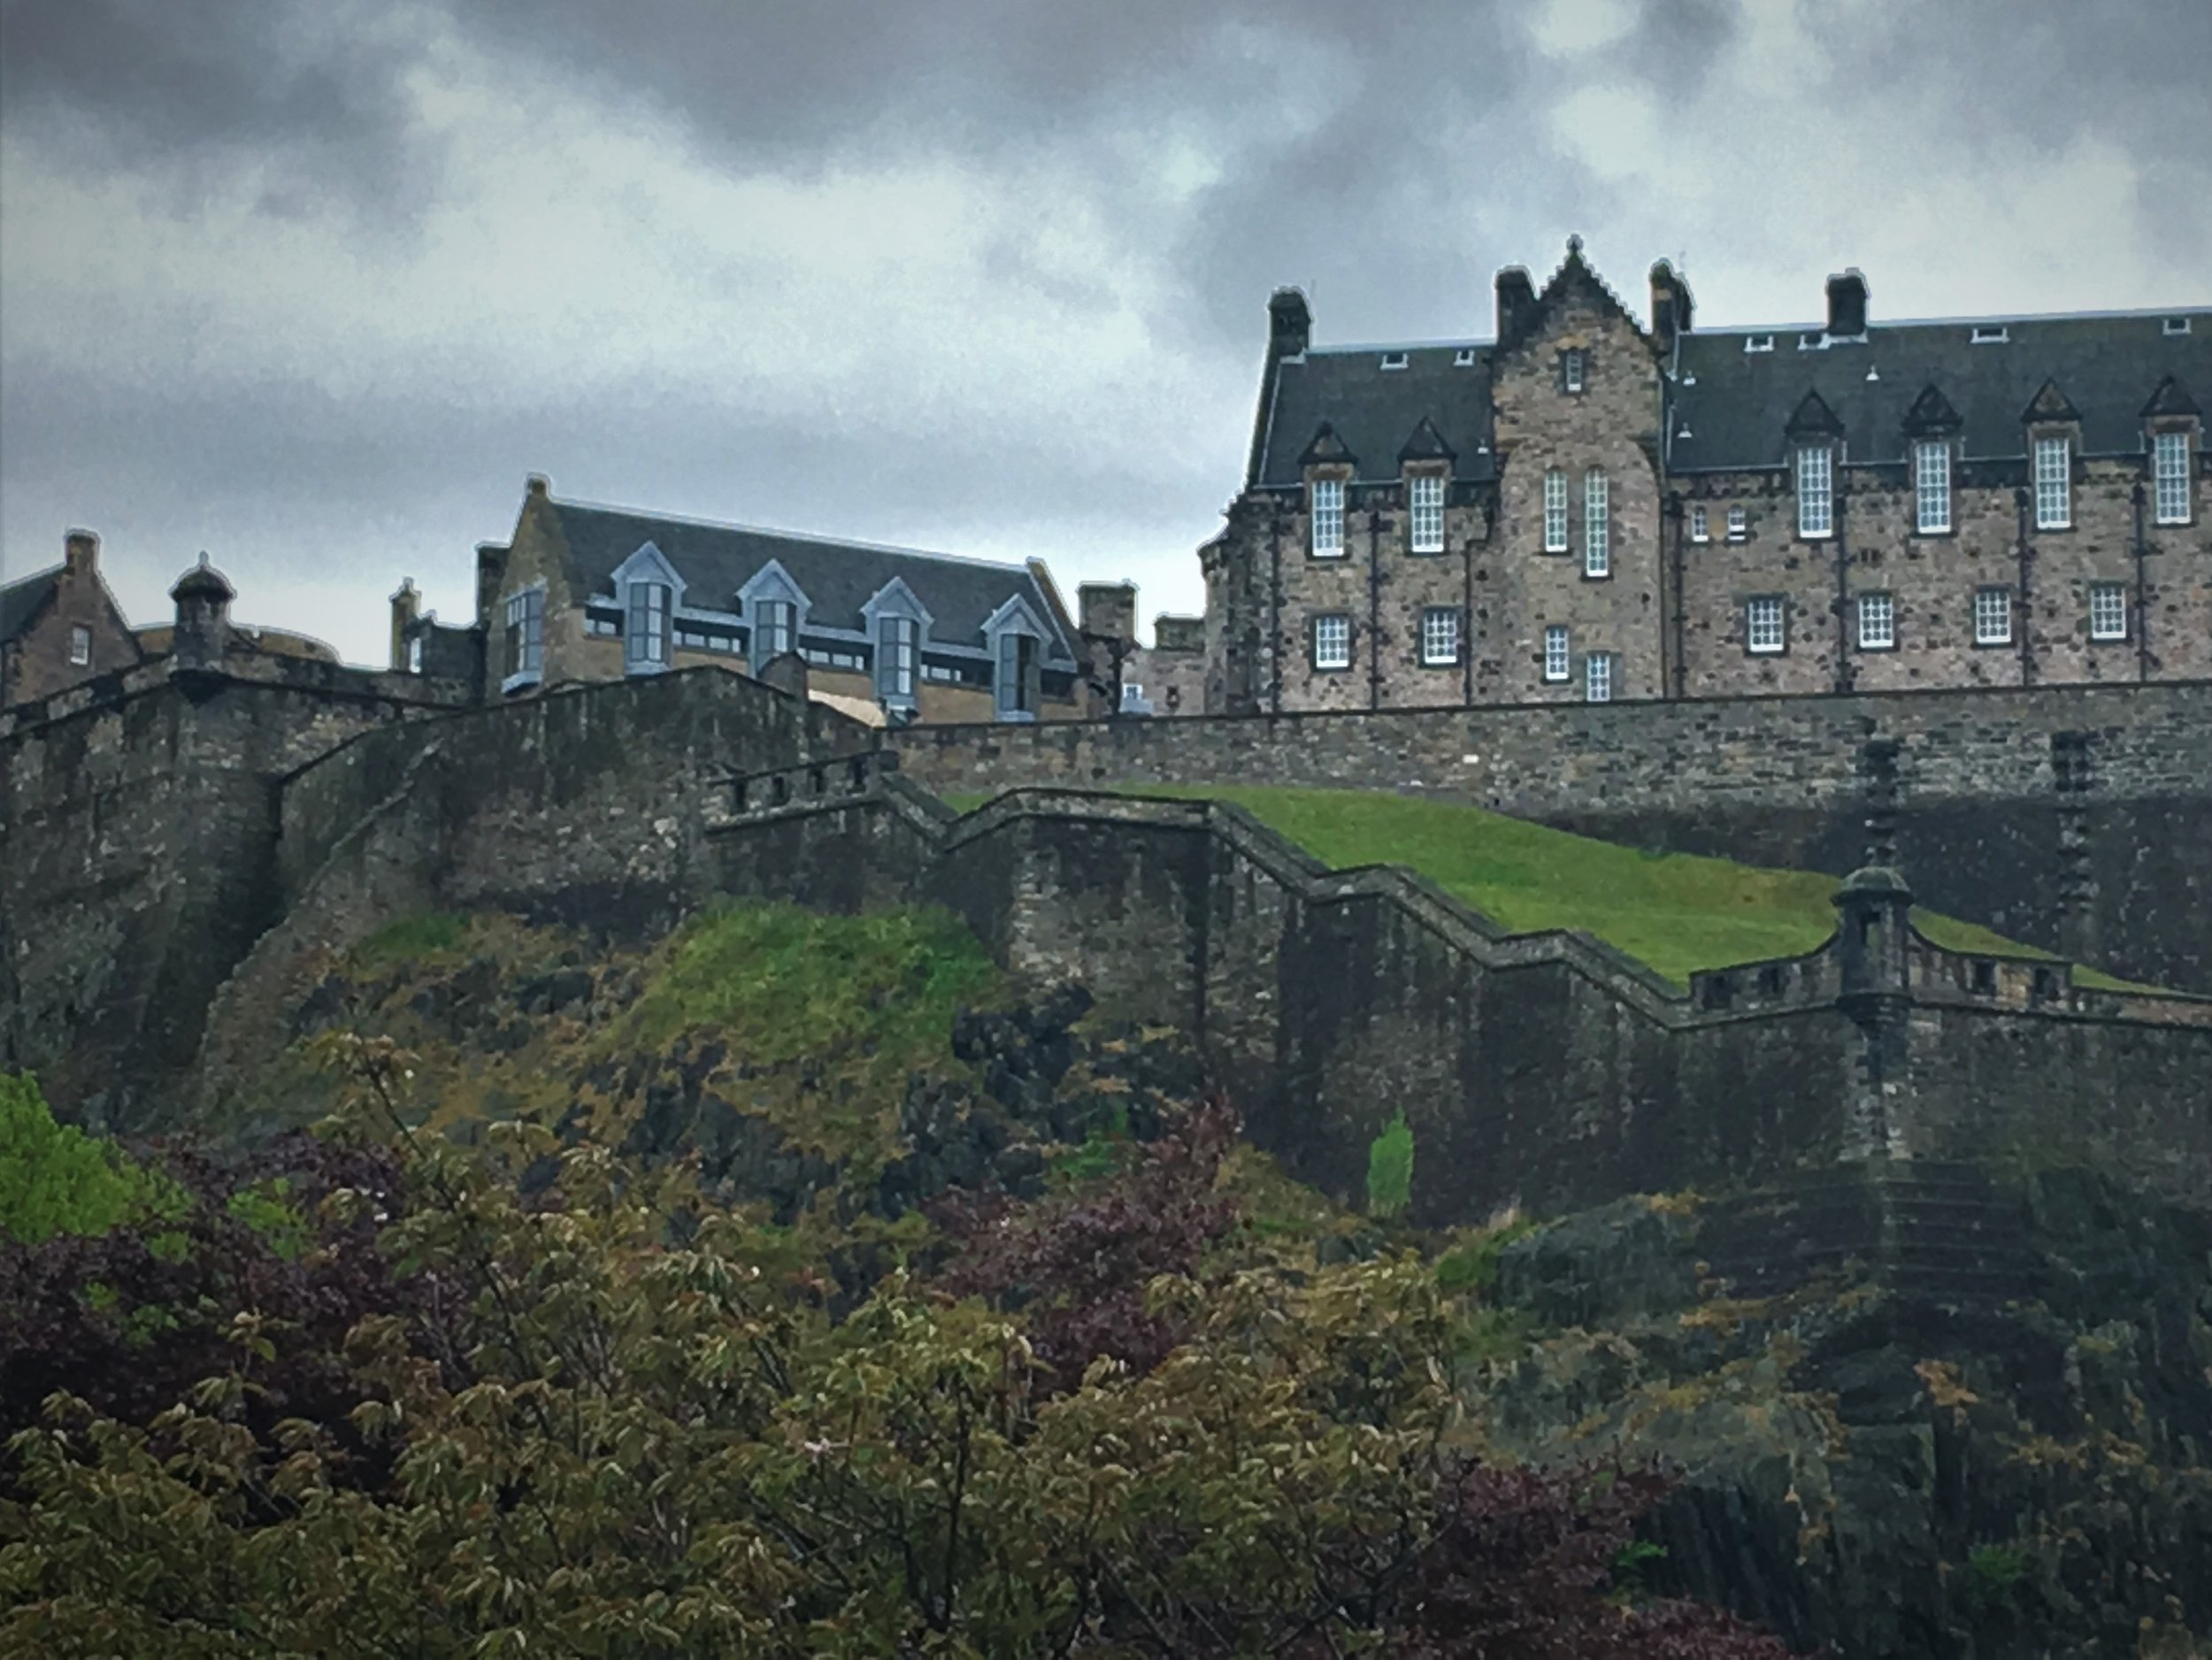 Edinburgh Castle - May, 15 2017This was, in fact, the very first castle I saw and was able to go inside of! Spooky, gorgeous, and a tad chilly on that Scottish hill!